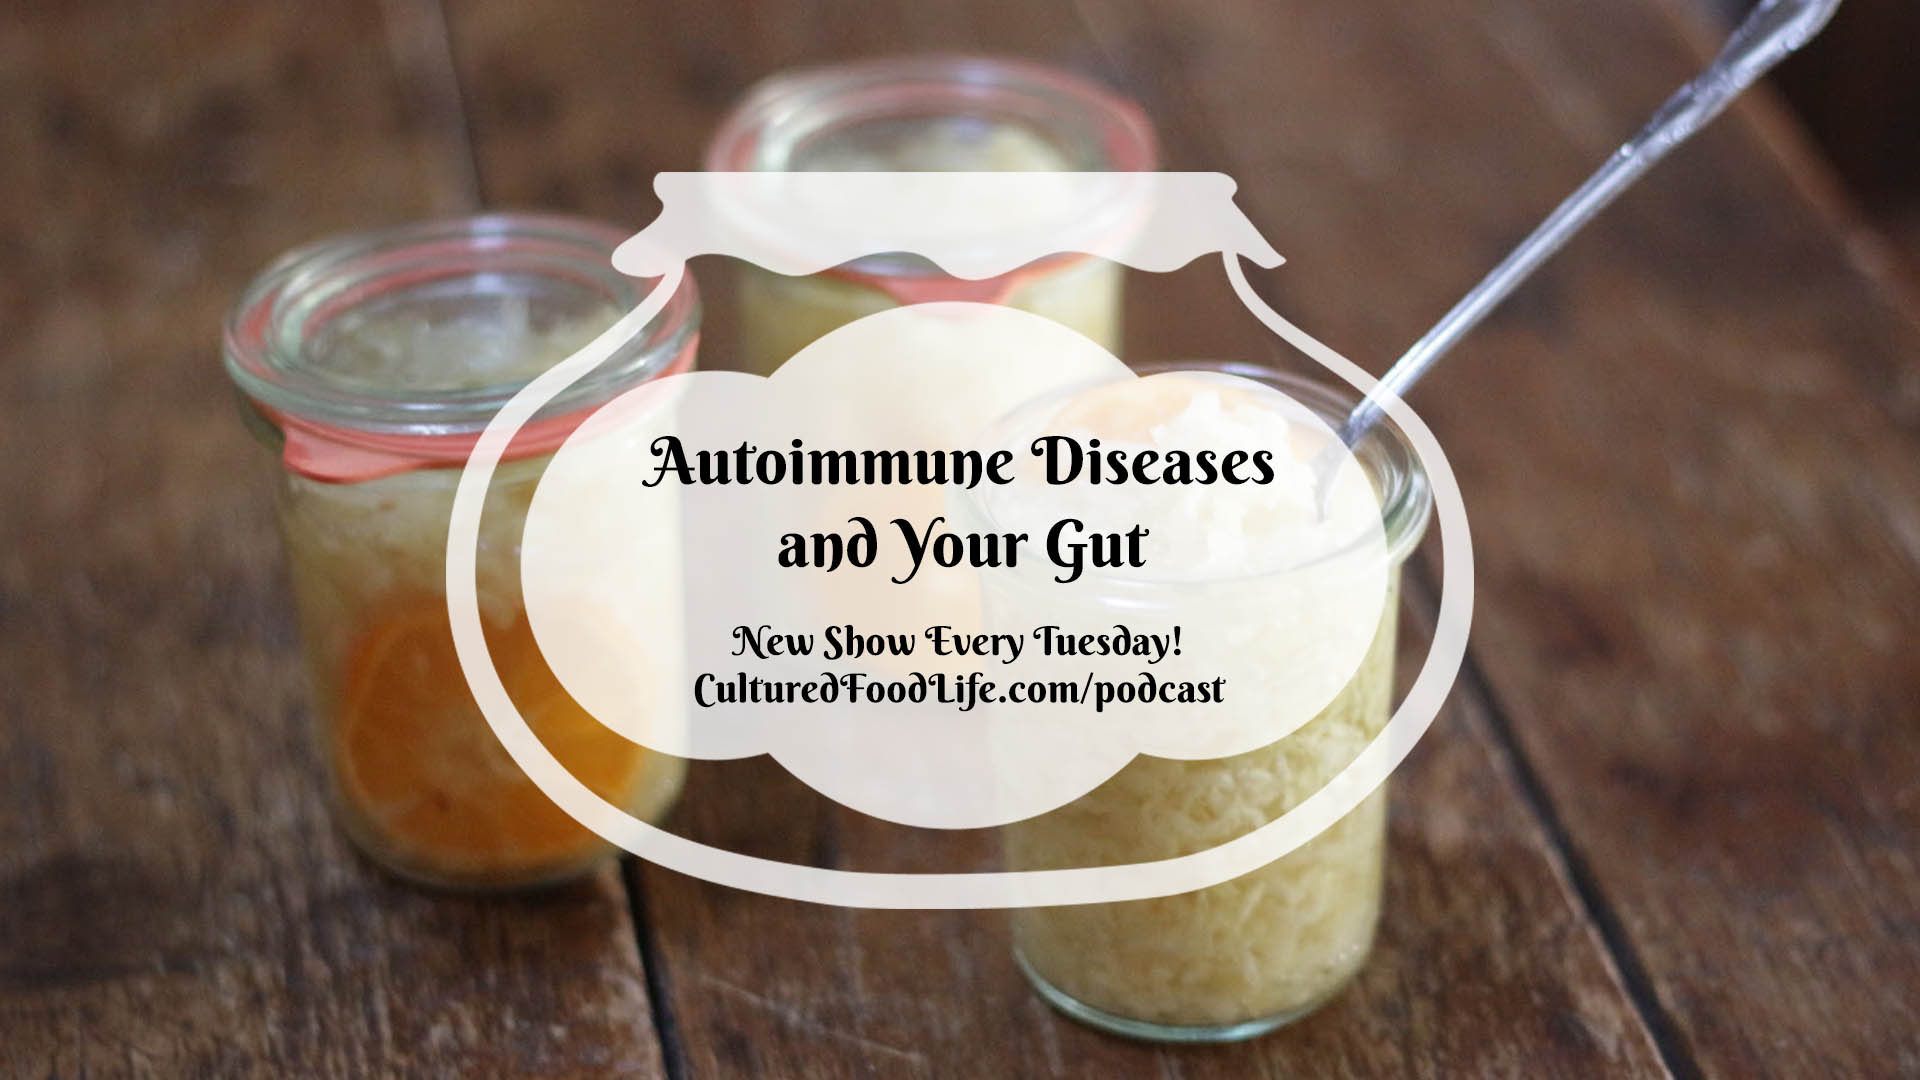 Episode 15: Autoimmune Diseases and Your Gut - Cultured Food